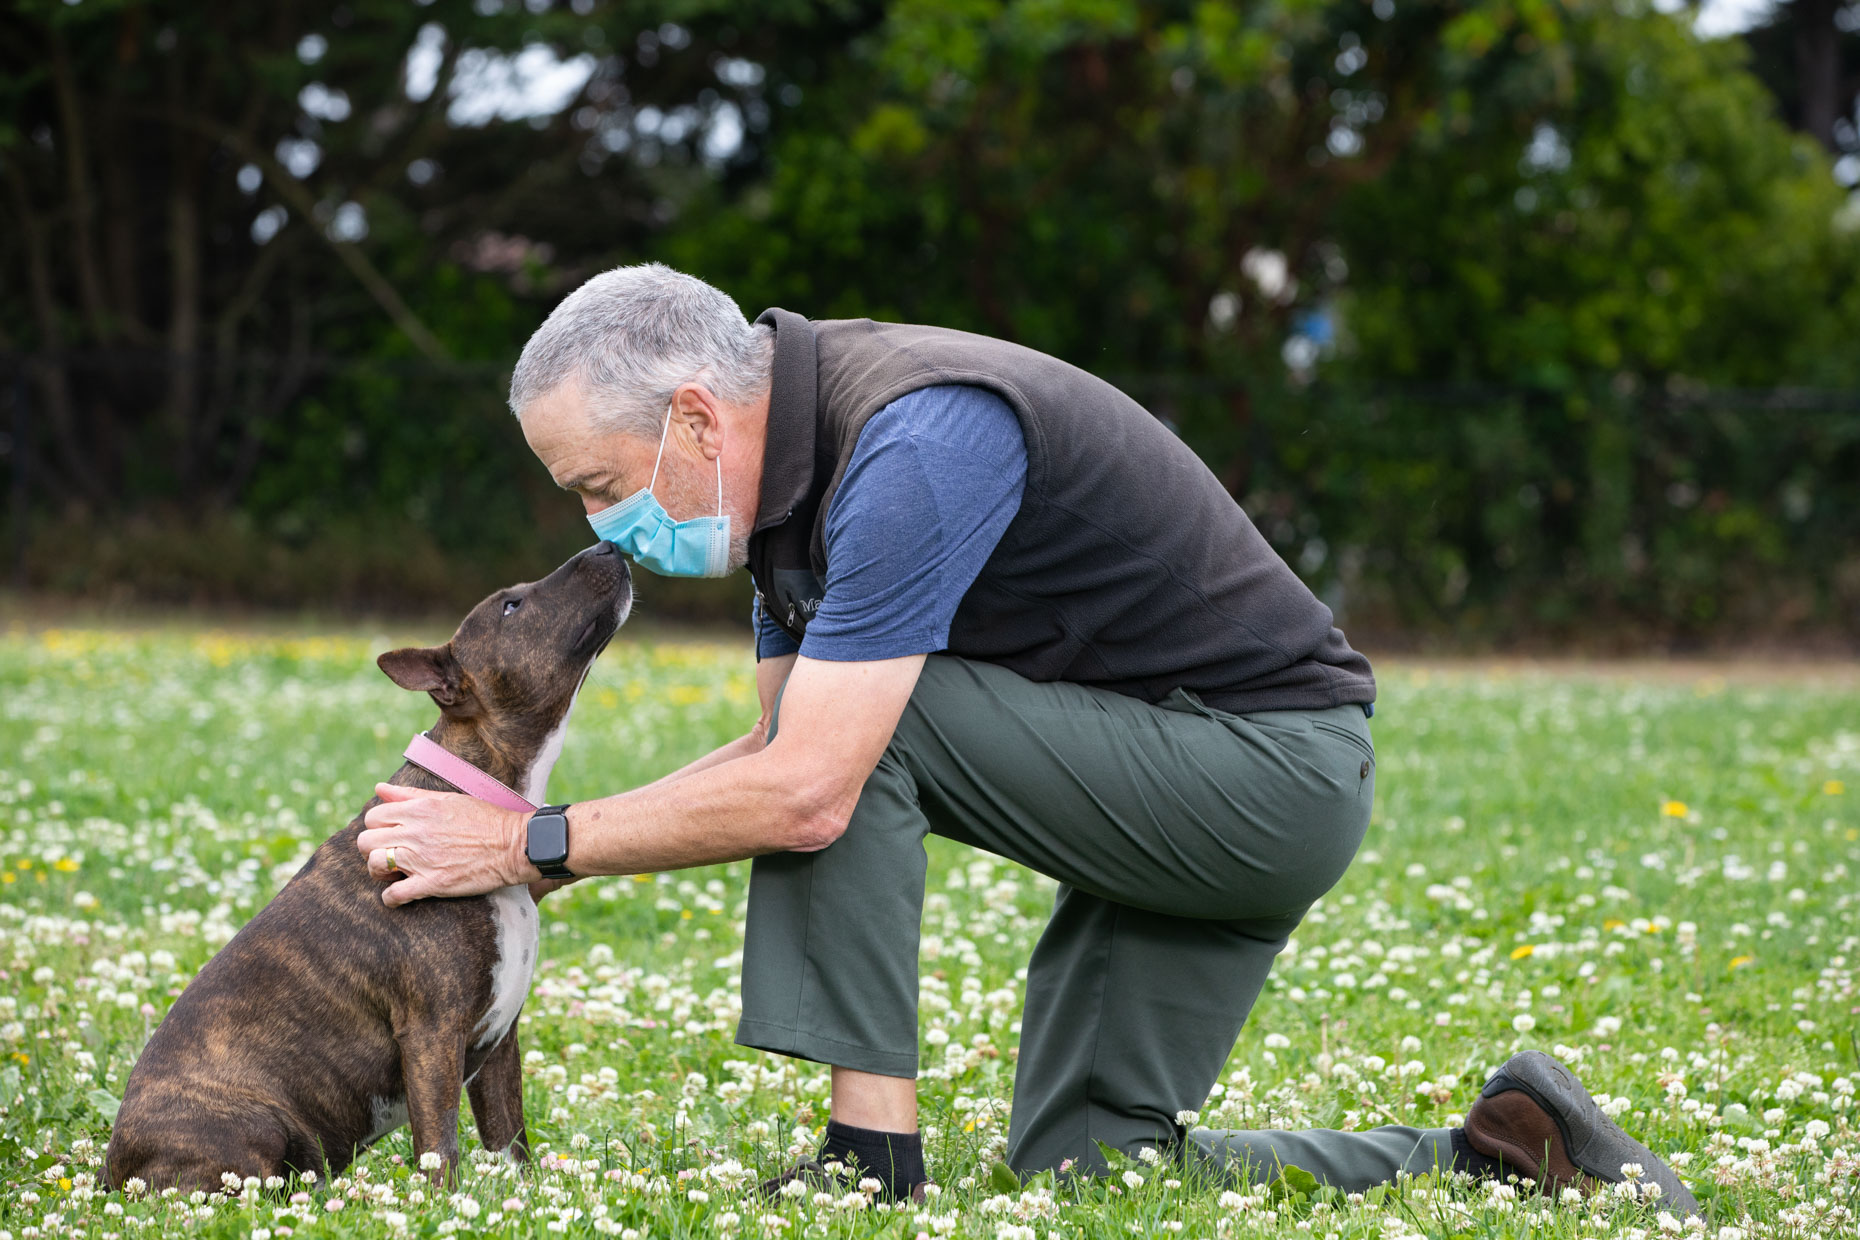 older man with gray hair and wearing surgical mask pets a small bull terrier mix dog